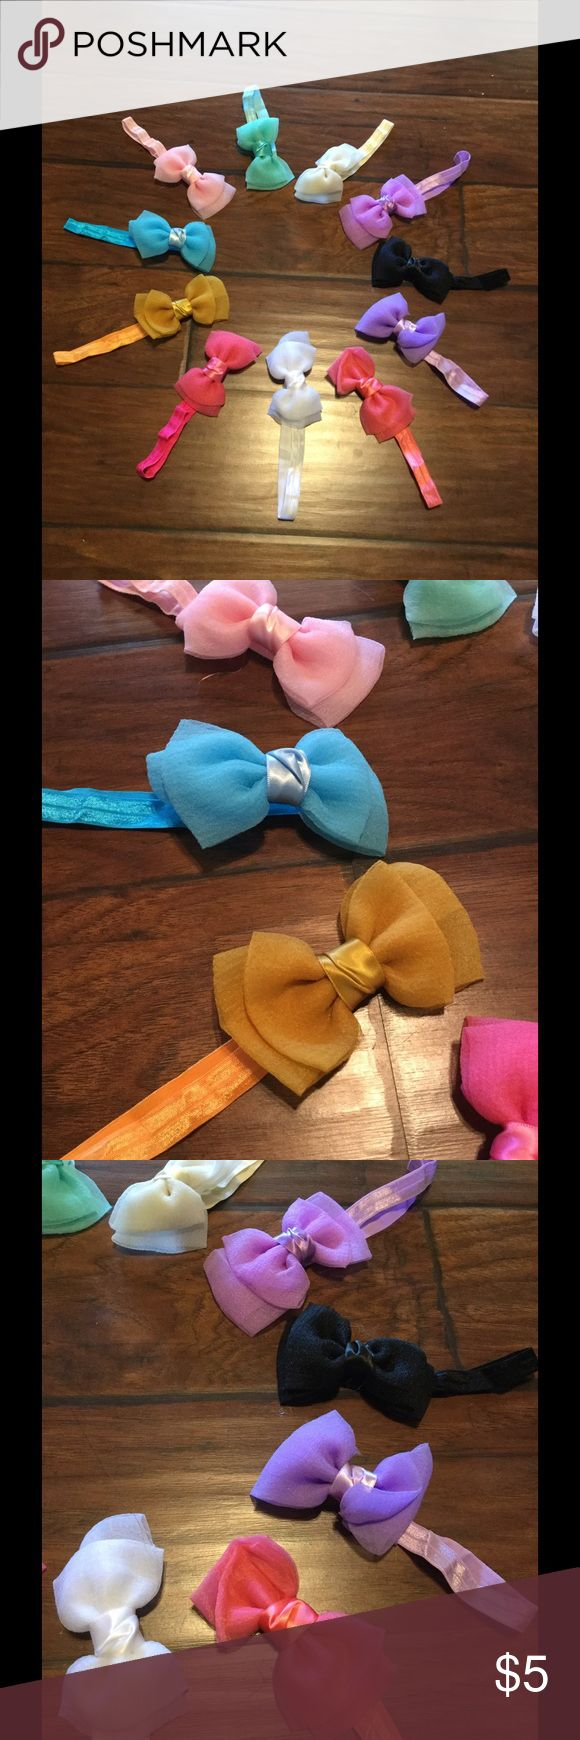 **SALE** 1 piece Beautiful baby ribbon headband Gorgeous baby /toddler ribbon headbands,m 11 beautiful colors to choose from.  Fits new born baby to 12 months.  $5 each, 2 for $7, 3 for $10, 4 for $12, 5 for $14, 6 for $16, 7 for $18, 8 or more for $20.  Please leave a message in comment for color choices, I will create a separate list for purchase. Accessories Hair Accessories